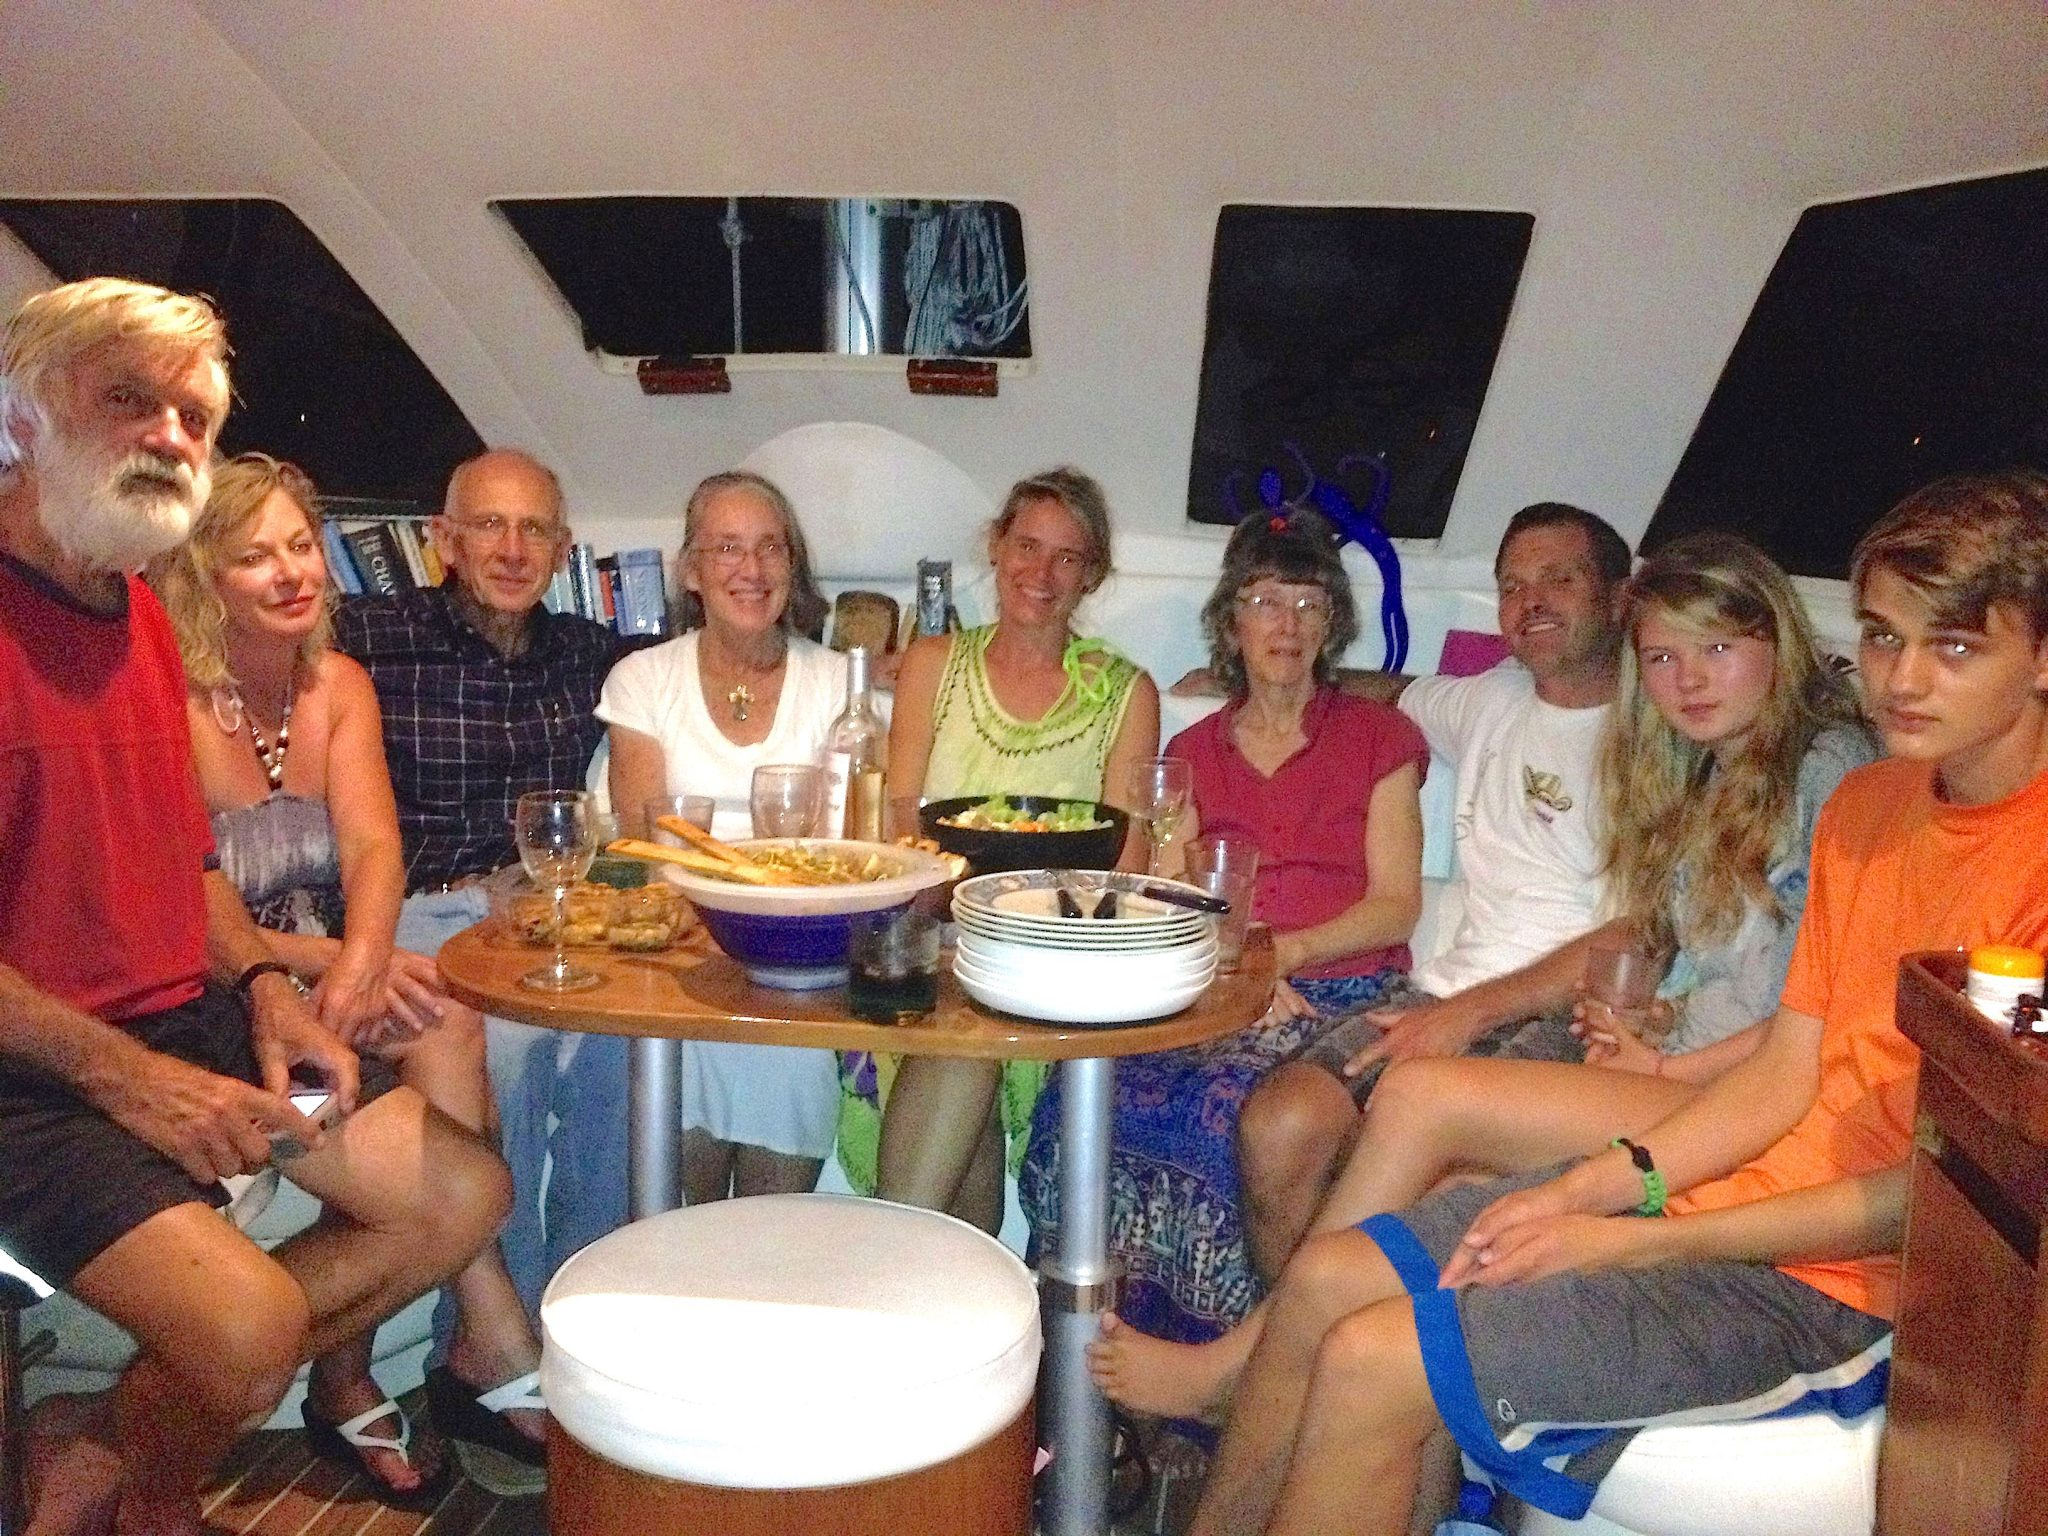 49. We met many sailing missionaries in Bora Bora whom we named Sailors for Christ.  David took this photo of the group on his boat, Sea Angel.  From left to right- Phil, Karen, Jeff, Anne, Beatrice, Pam, Ken, Gabriella, Josh.